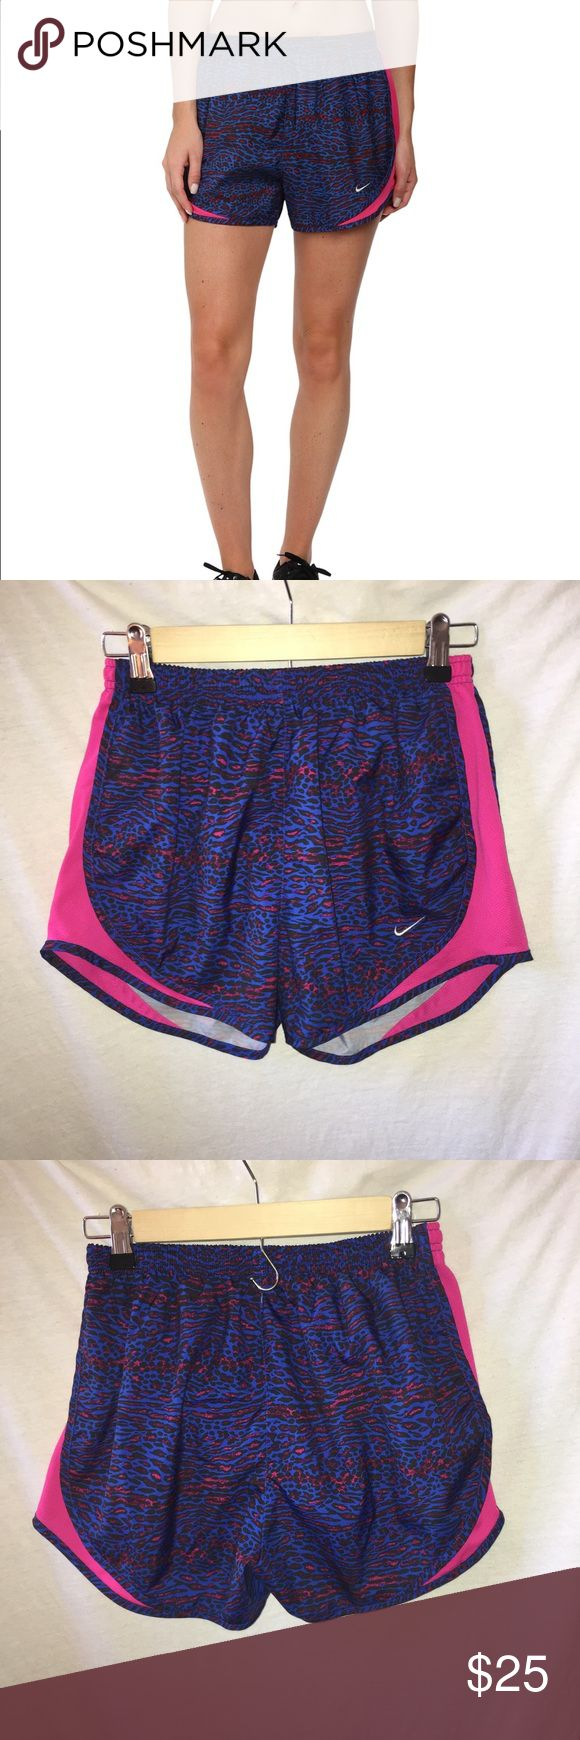 Nike Dri Fit Tempo Cheetah Shorts Don't like the price?  Make me an offer!  Always willing to offer discounts on bundles. Nike Shorts